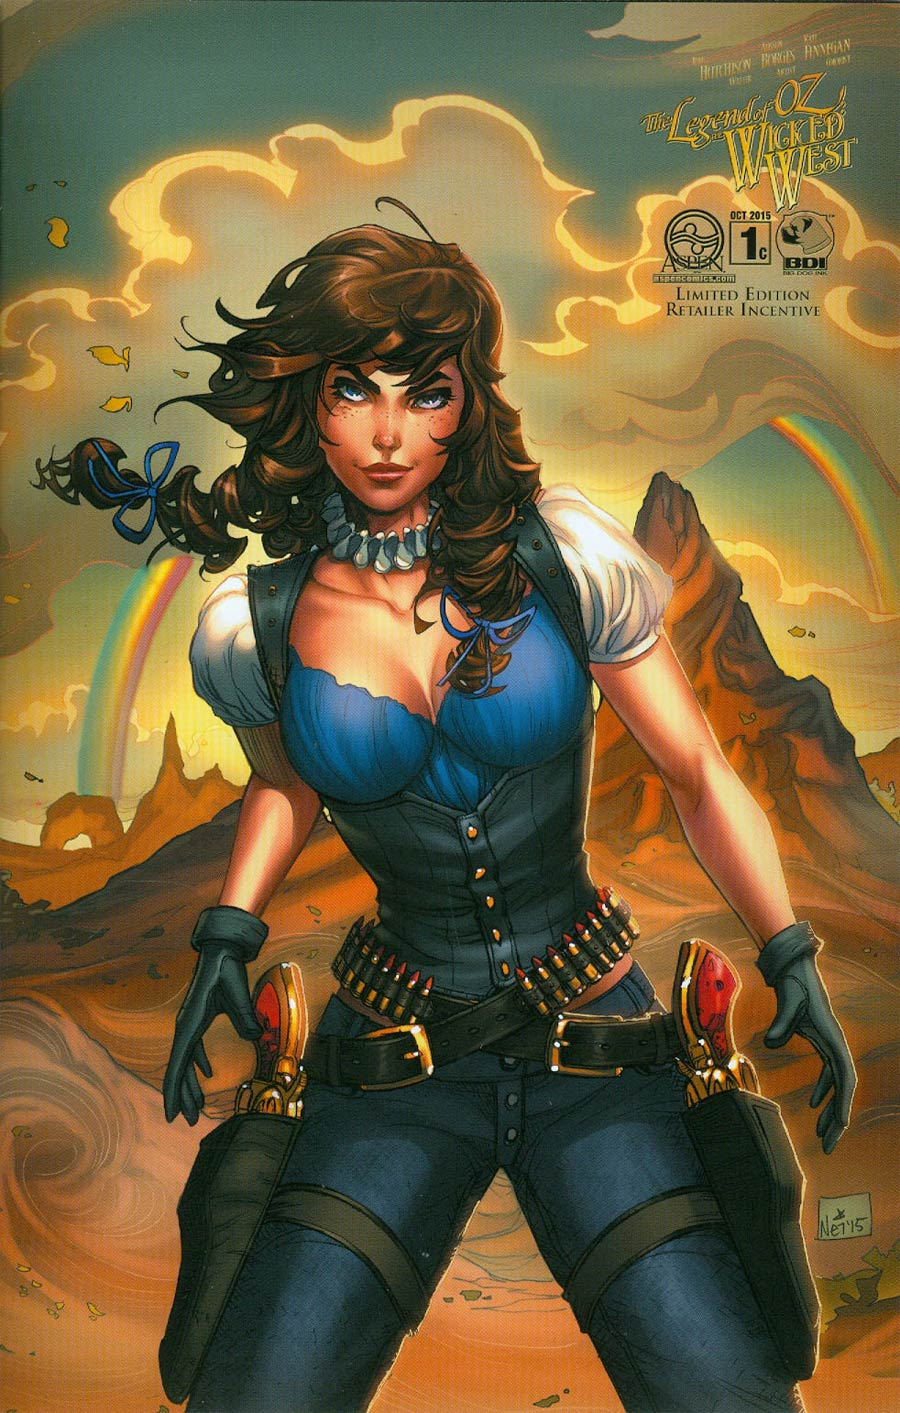 Legend Of Oz The Wicked West Vol 3 #1 Cover C Incentive Nei Ruffino Variant Cover